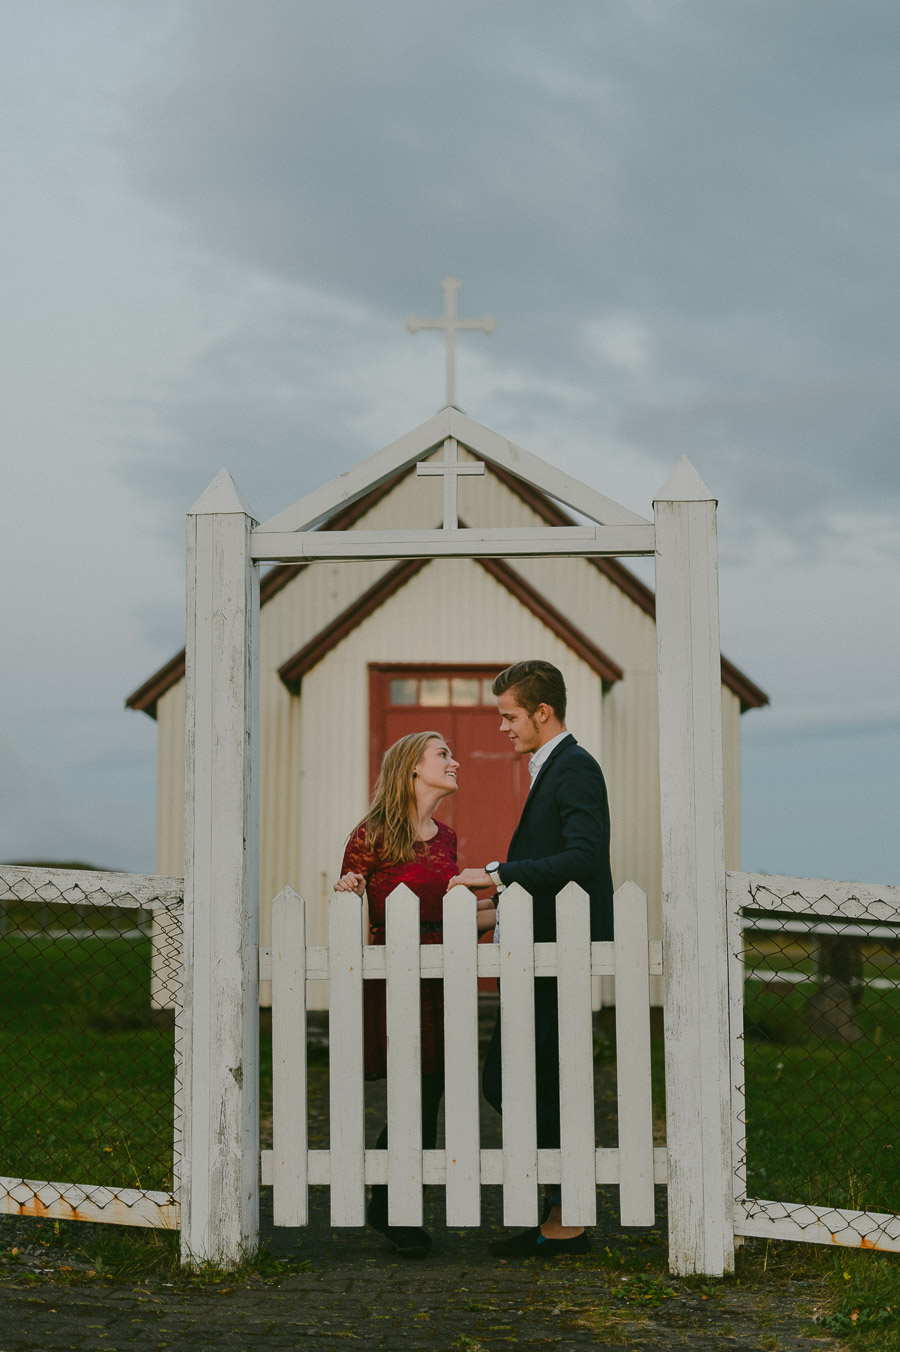 Sarah_Lauri_Iceland_wedding_photographer_M&J_Studios-037